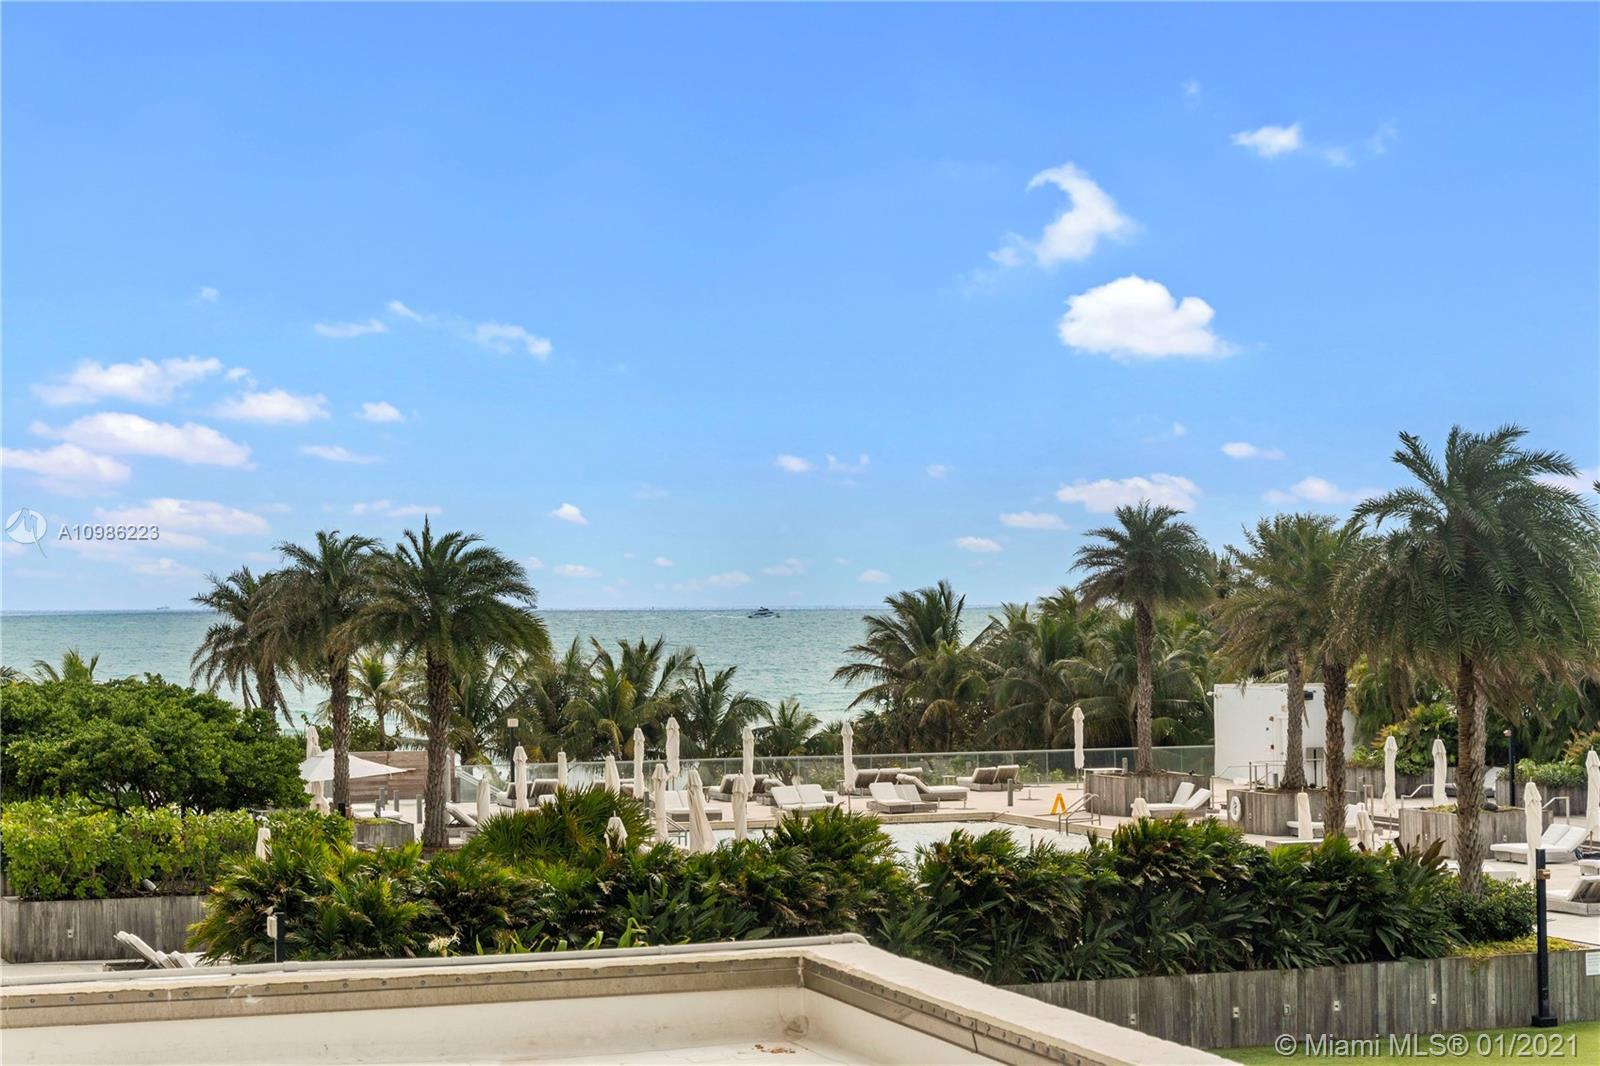 This is a must see. Walk in and be amazed at the tropical palm trees and ocean views. Don't be deter